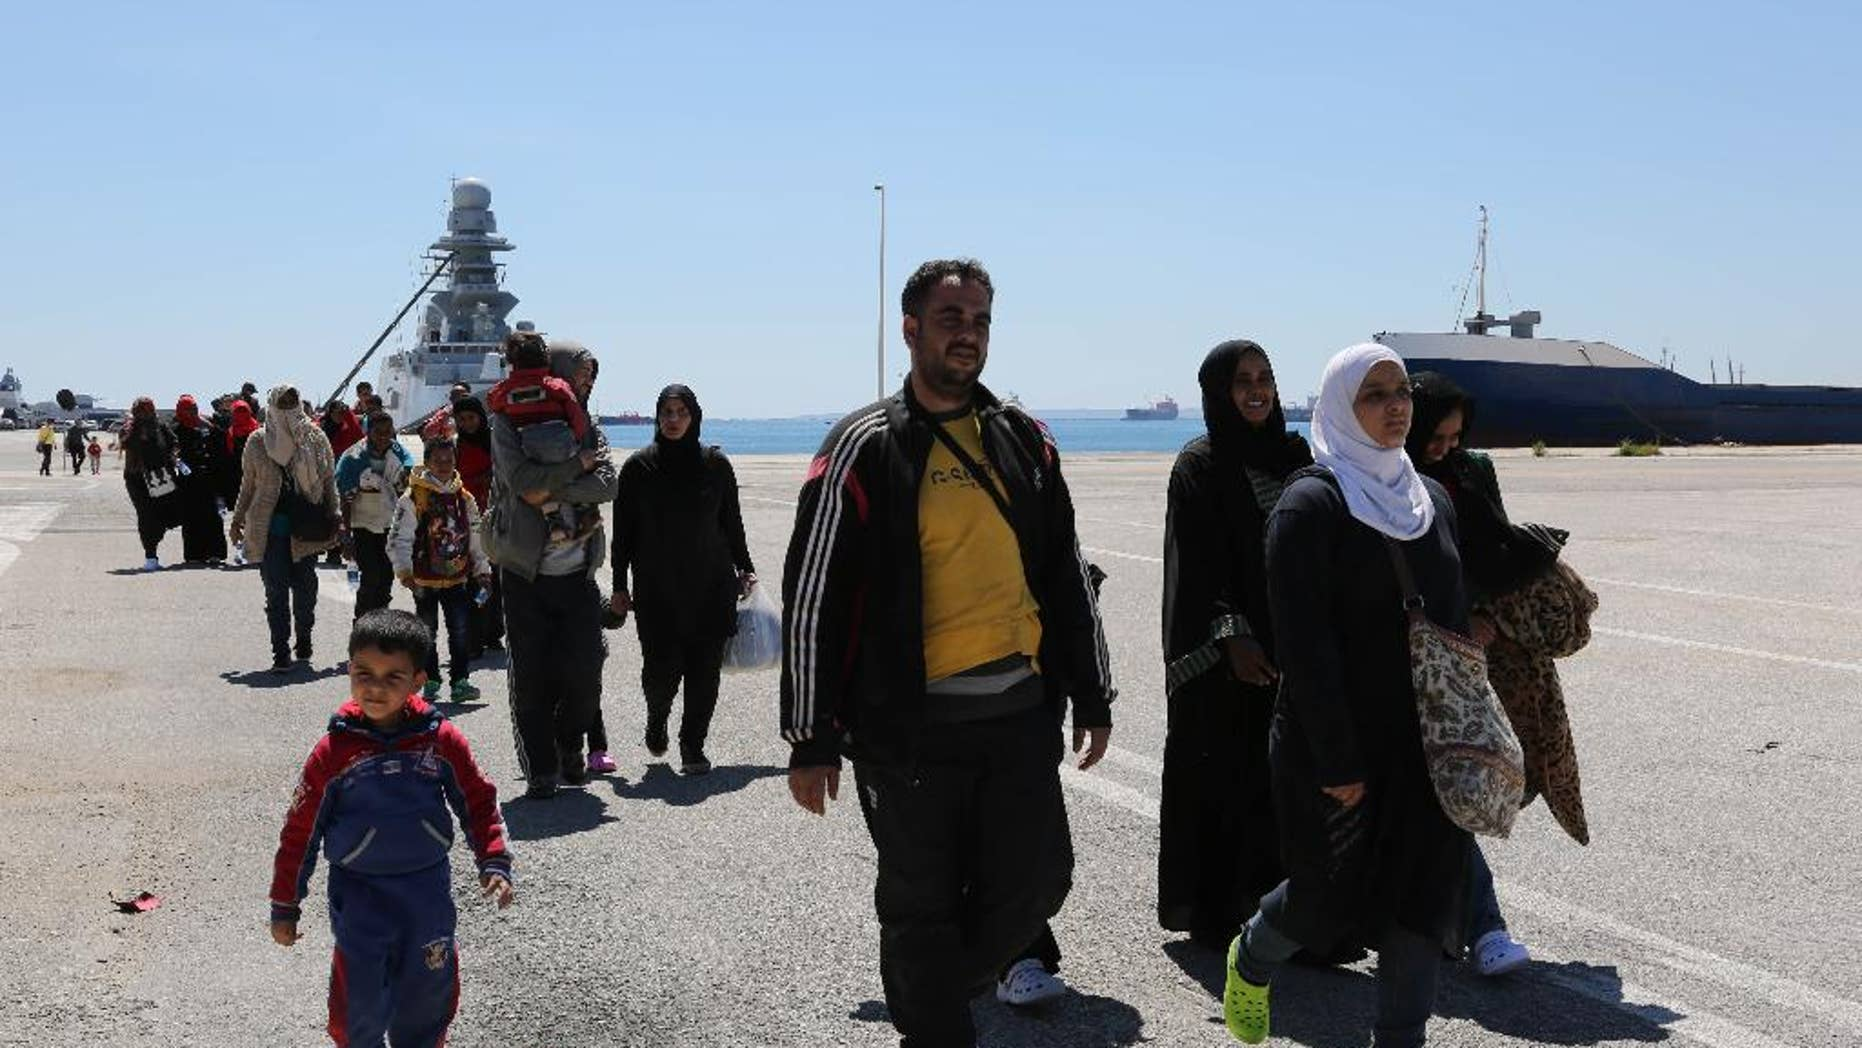 Rescued migrants walk after disembarking from an Italian Navy vessel in the harbor of Augusta, Sicily, Southern Italy, Wednesday, April 22, 2015. Italy pressed the European Union on Wednesday to devise concrete, robust steps to stop the deadly tide of migrants on smugglers' boats in the Mediterranean, including setting up refugee camps in countries bordering Libya. Italian Defense Minister Roberta Pinotti also said human traffickers must be targeted with military intervention. (AP Photo/Francesco Malavolta)